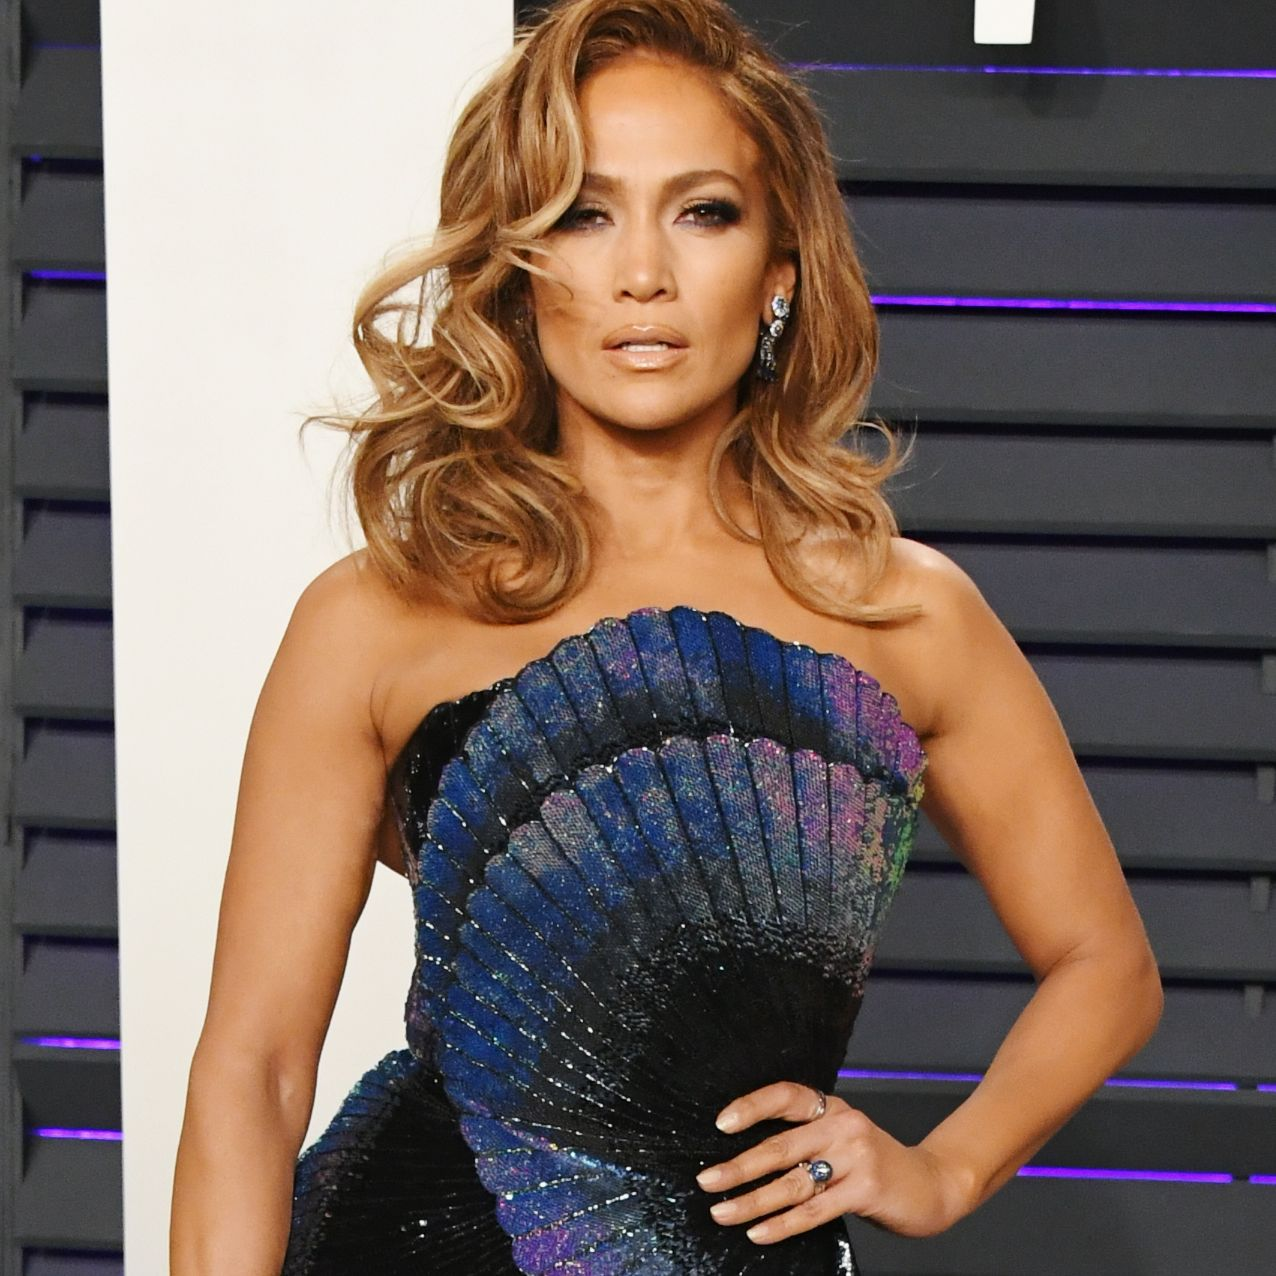 J.Lo Shows Off Abs In New Instagram Post And They Look Incredible